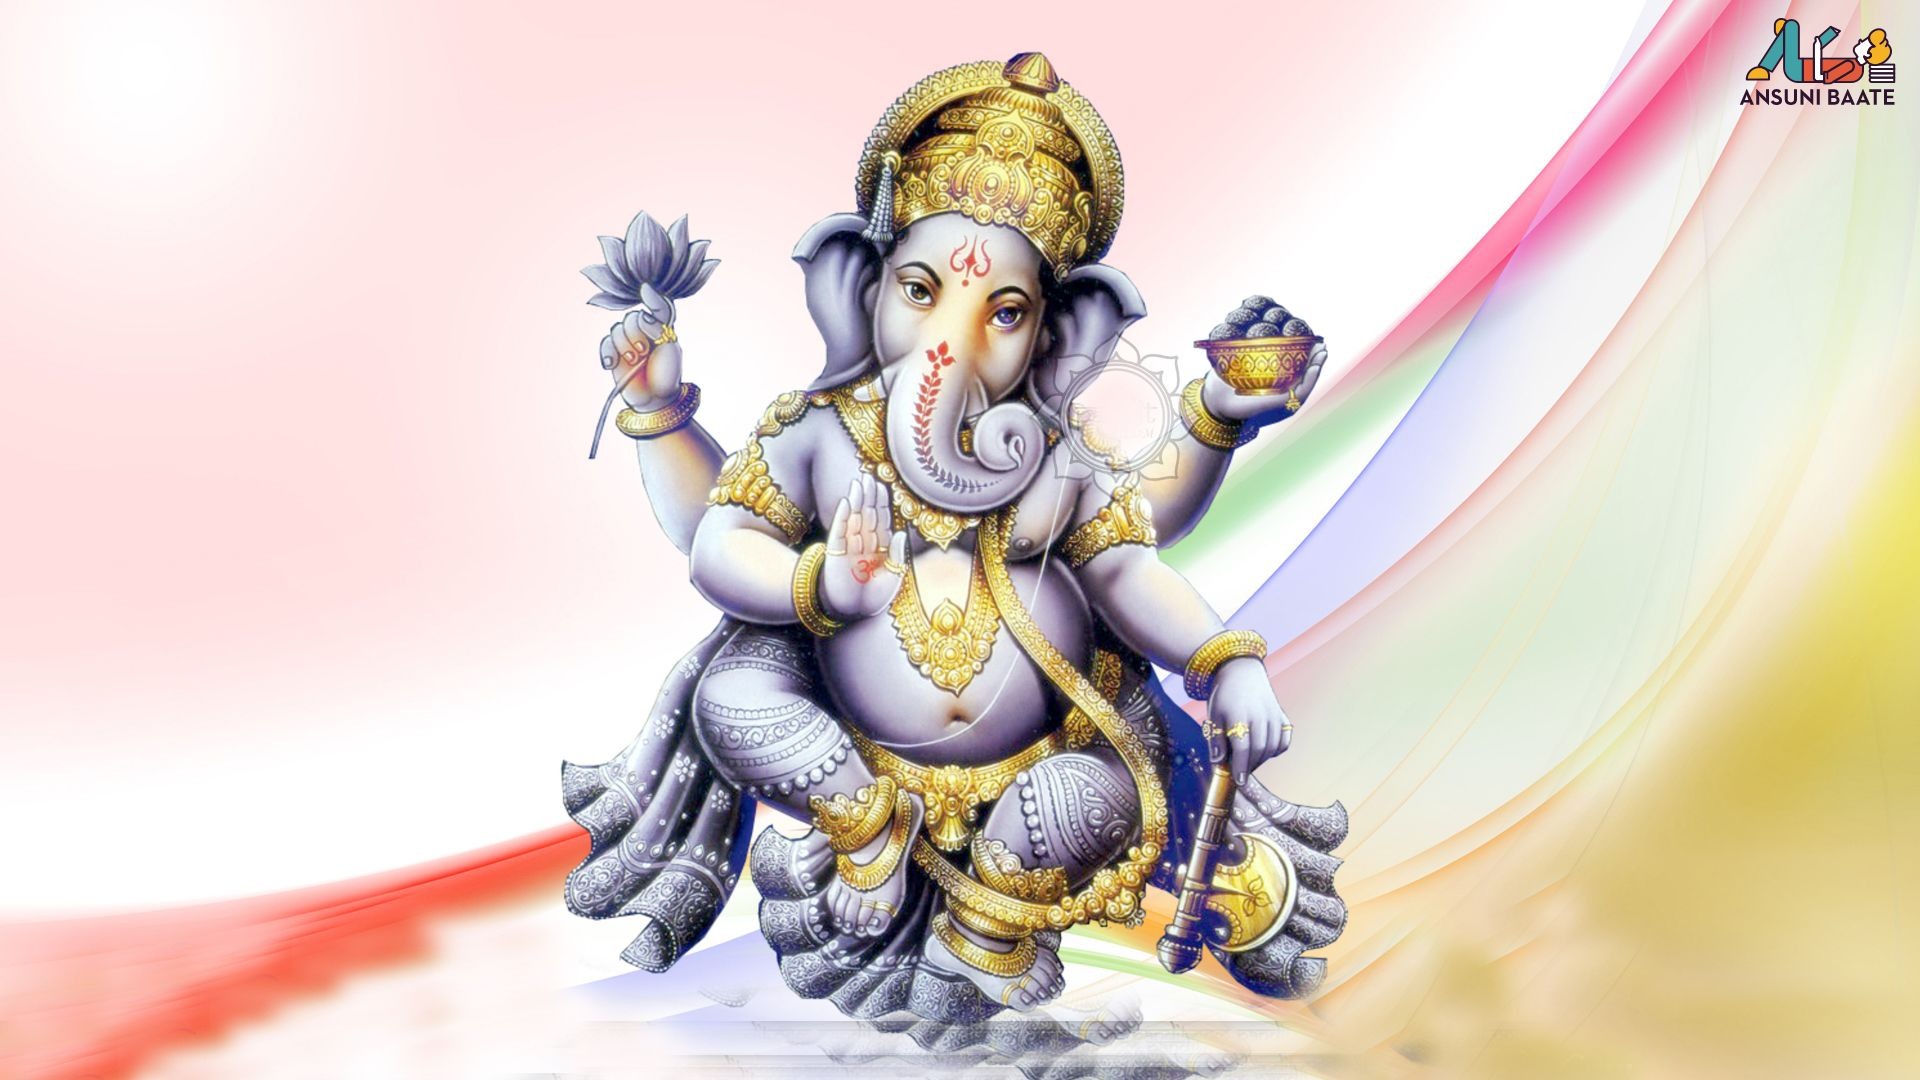 Lord Ganesha Wallpaper 1080p Hd High Resolution Download Lord Ganesha Ganesha Pictures Hanuman Wallpaper